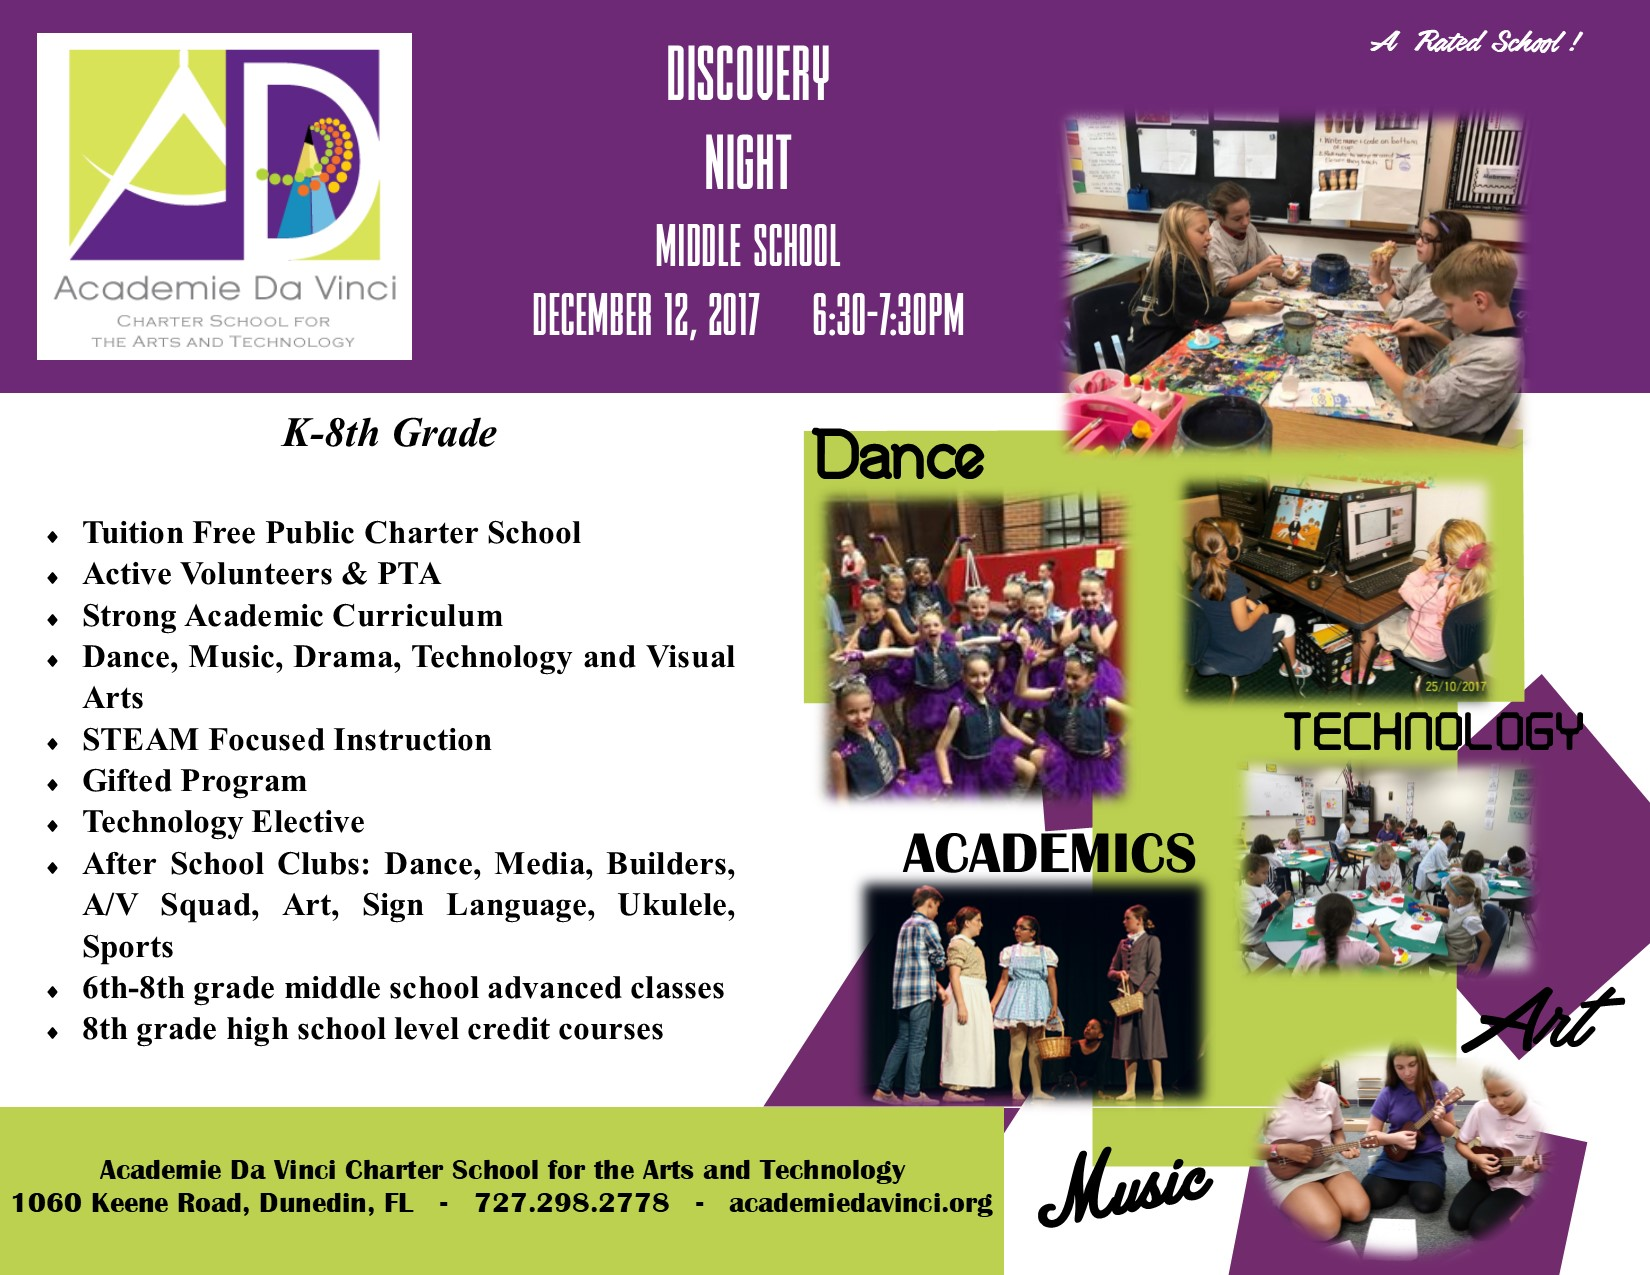 Middle School Discovery Night